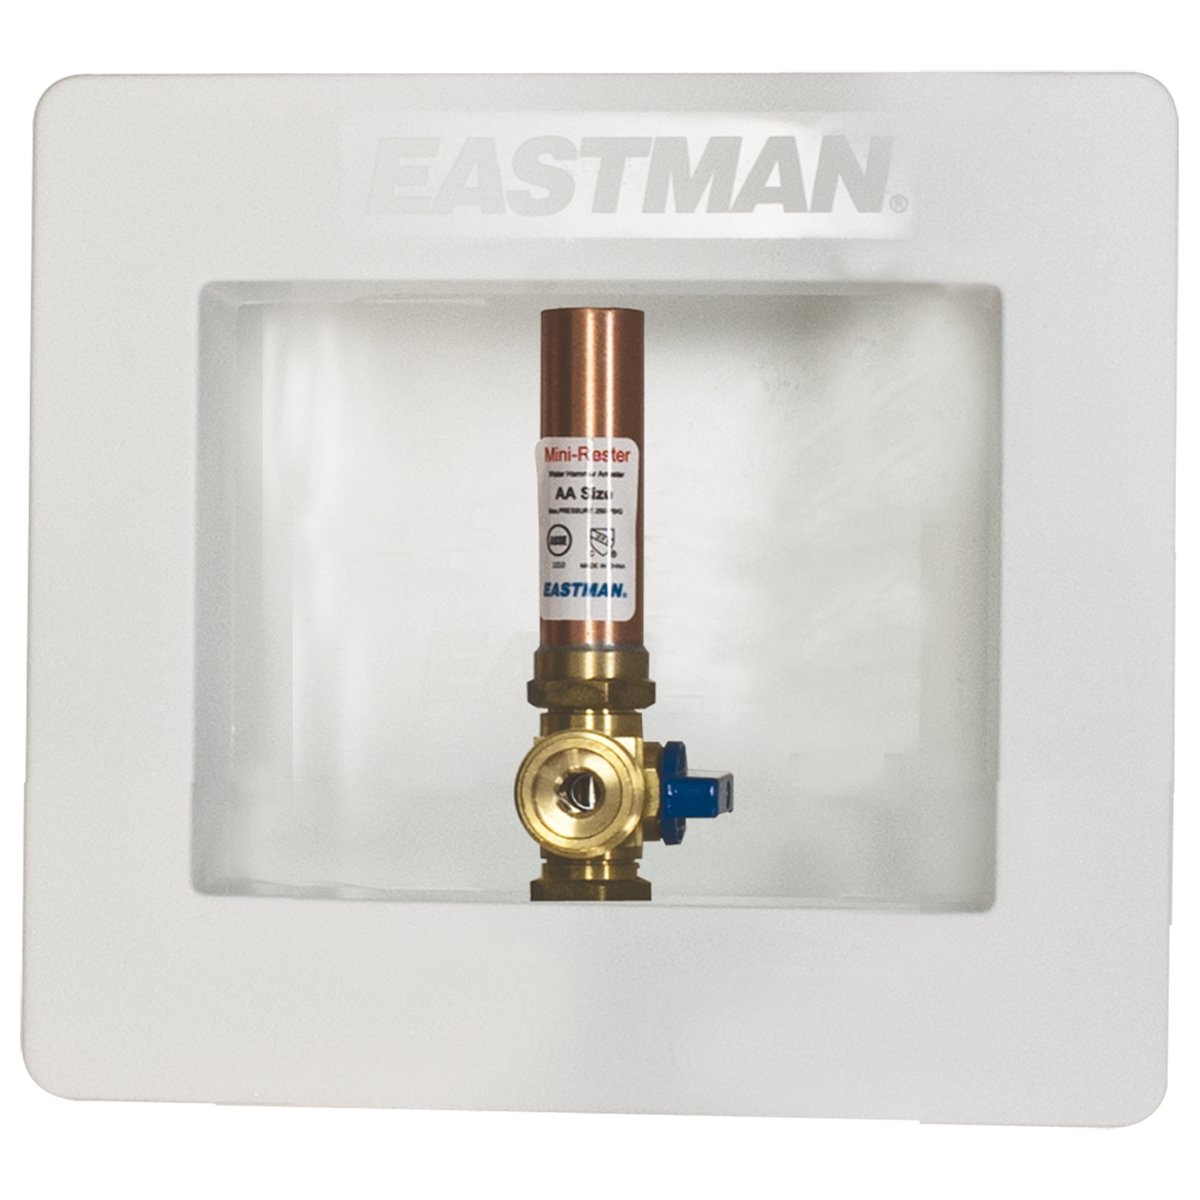 Eastman 60258 Pre-assembled Ice Maker Outlet Box, 1/2-Inch Expansion PEX Connection with Installed 1/4-Turn Ball Valve and Hammer Arrester, White